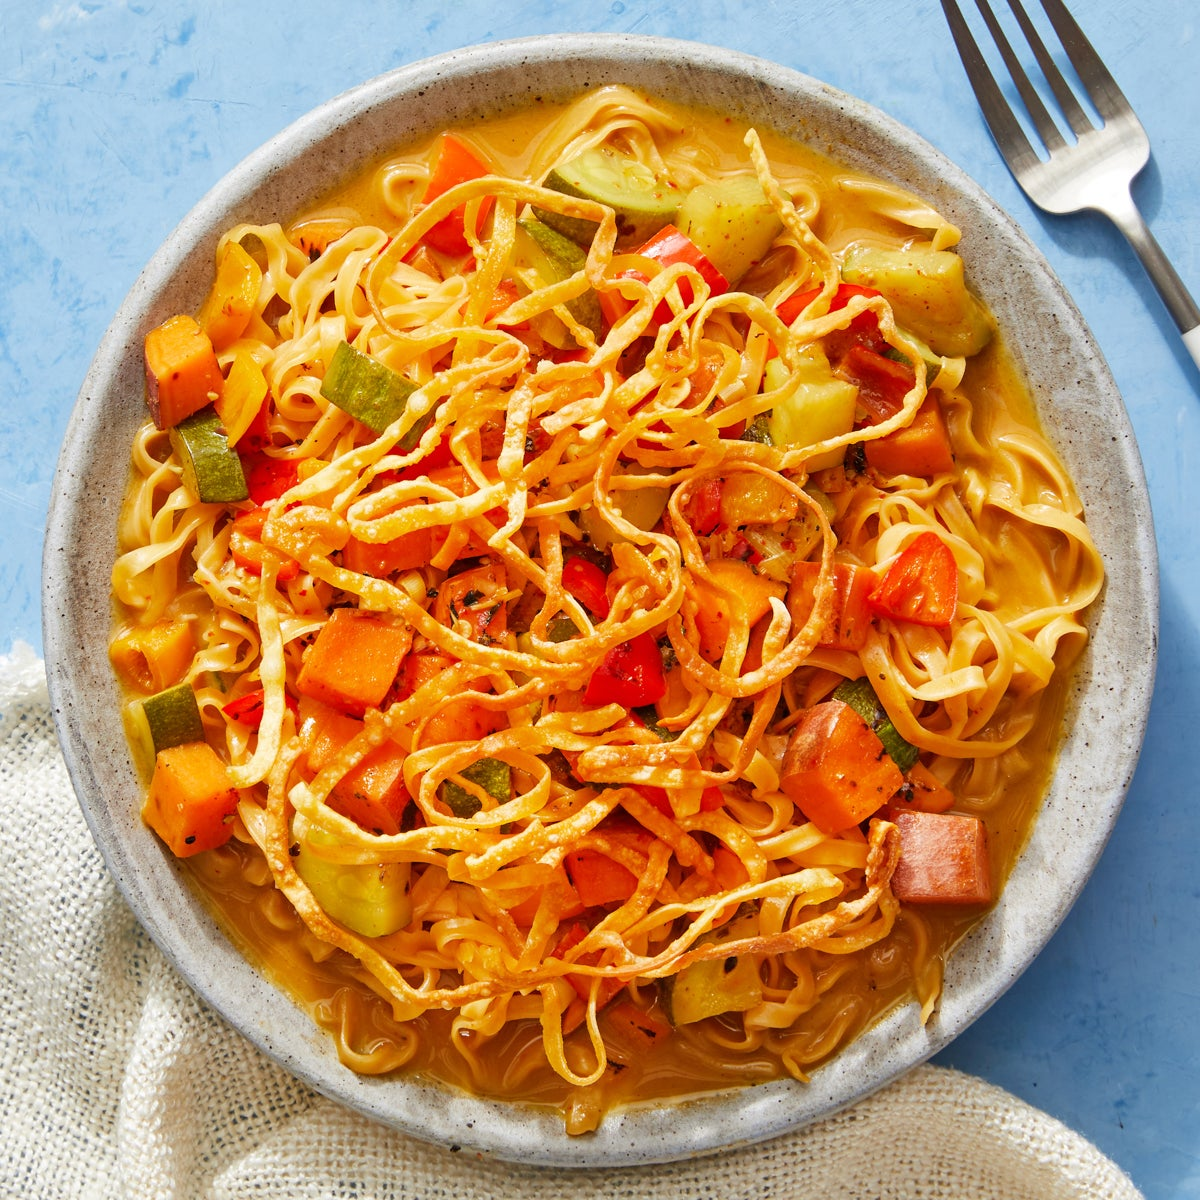 Khao Soi-Style Wonton Noodles with Zucchini & Peppers